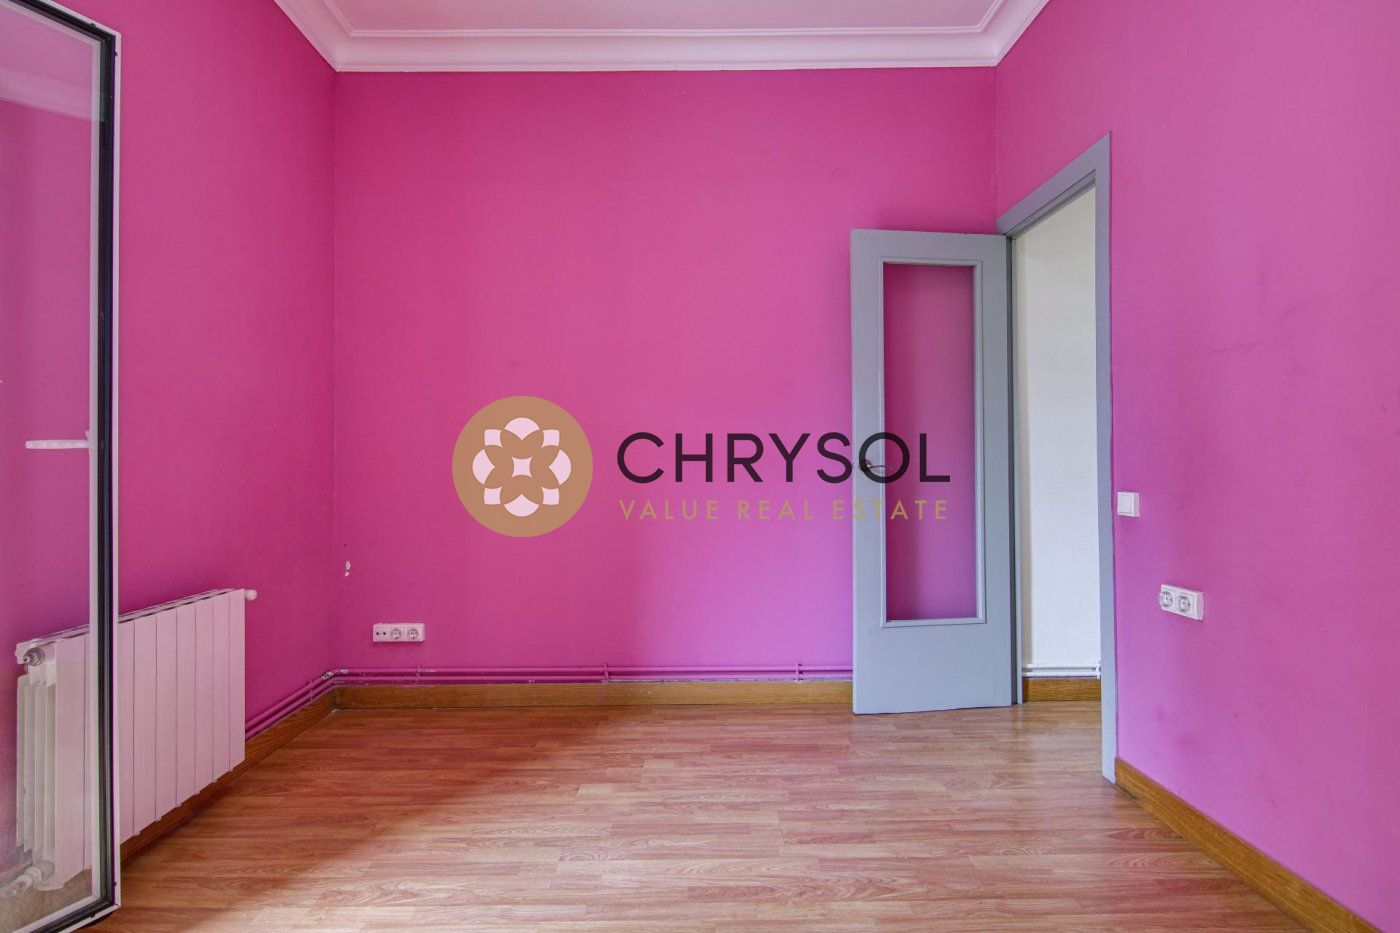 Photogallery - 15 - Chrysol Value